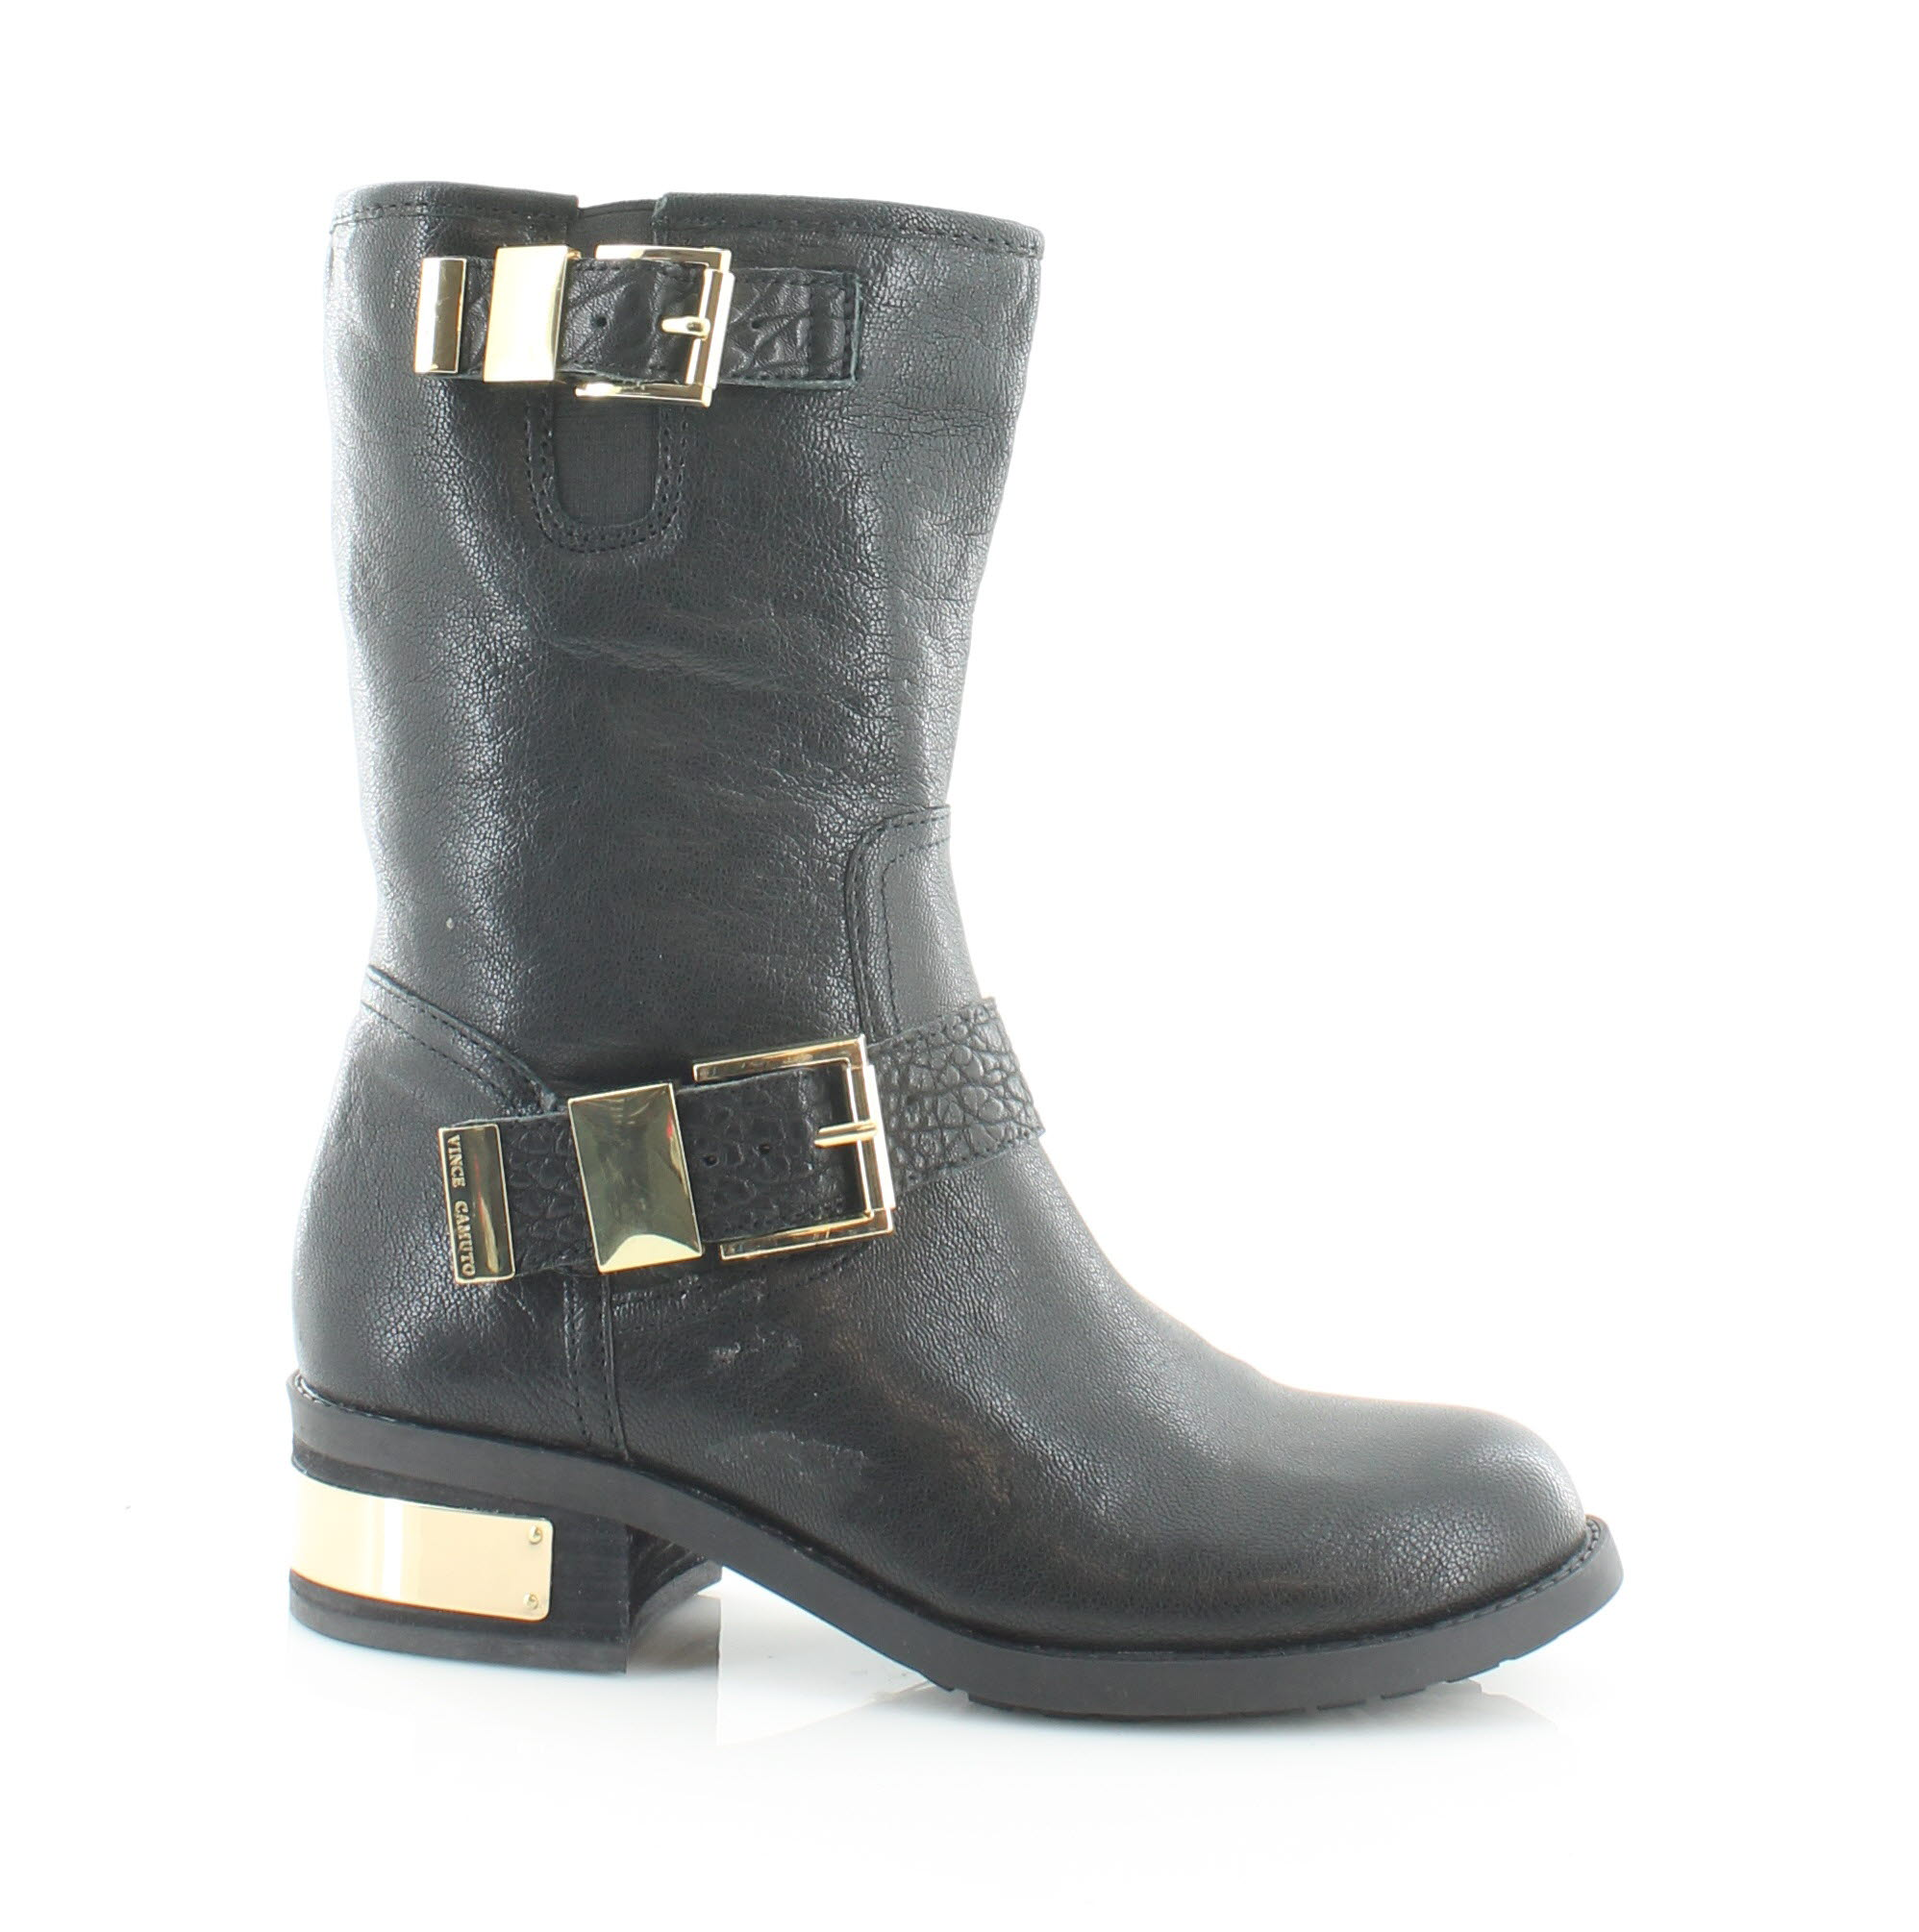 vince camuto new walda black womens shoes size 5 m boots